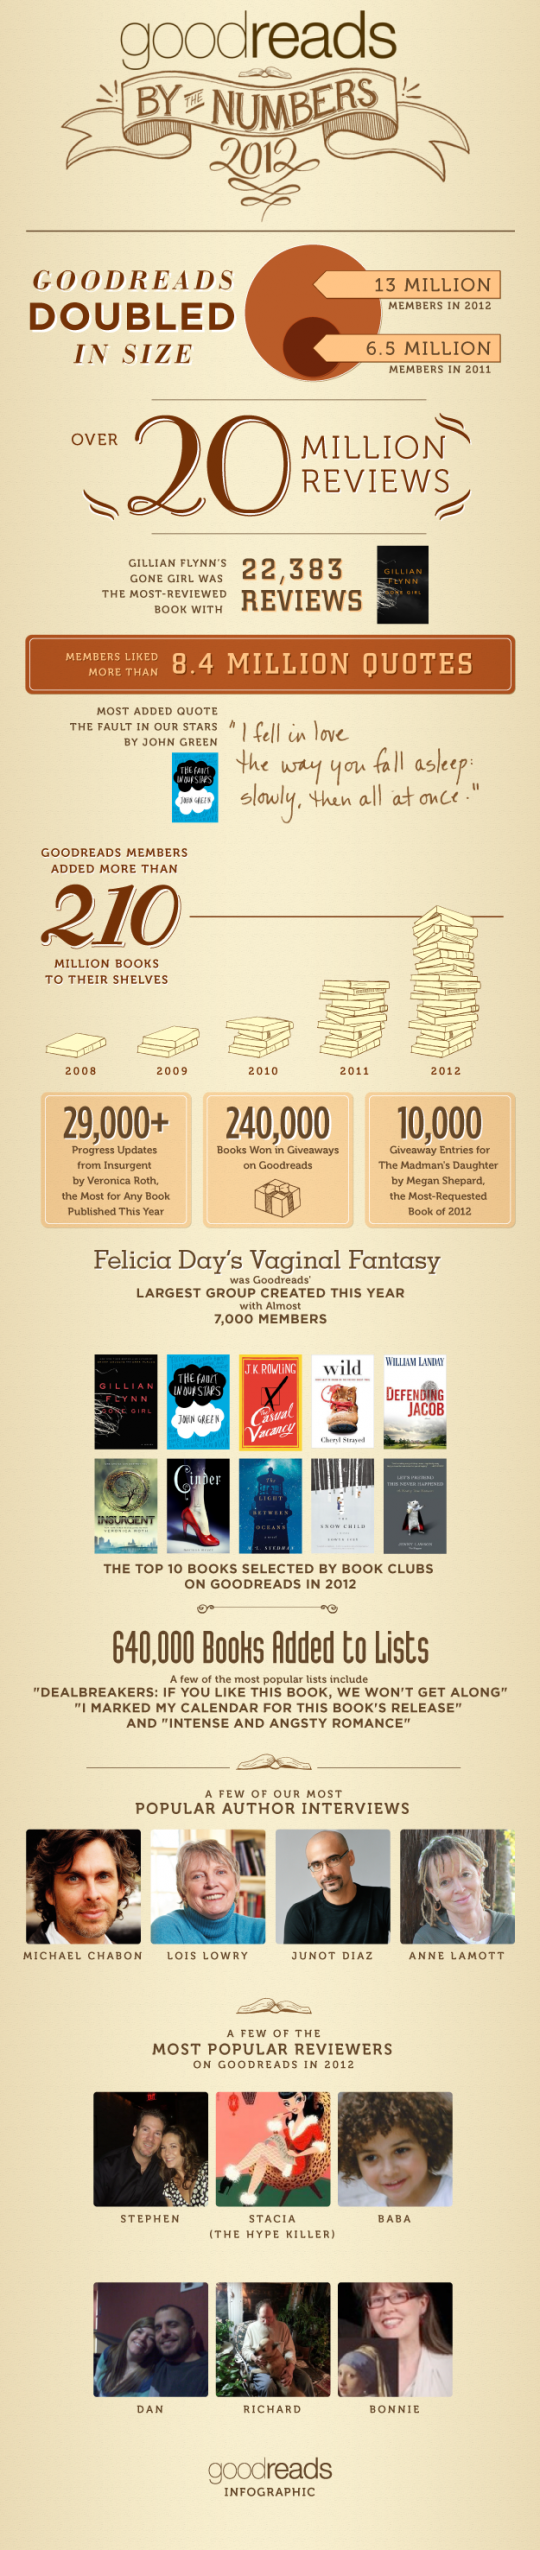 Goodreads infographic 2012